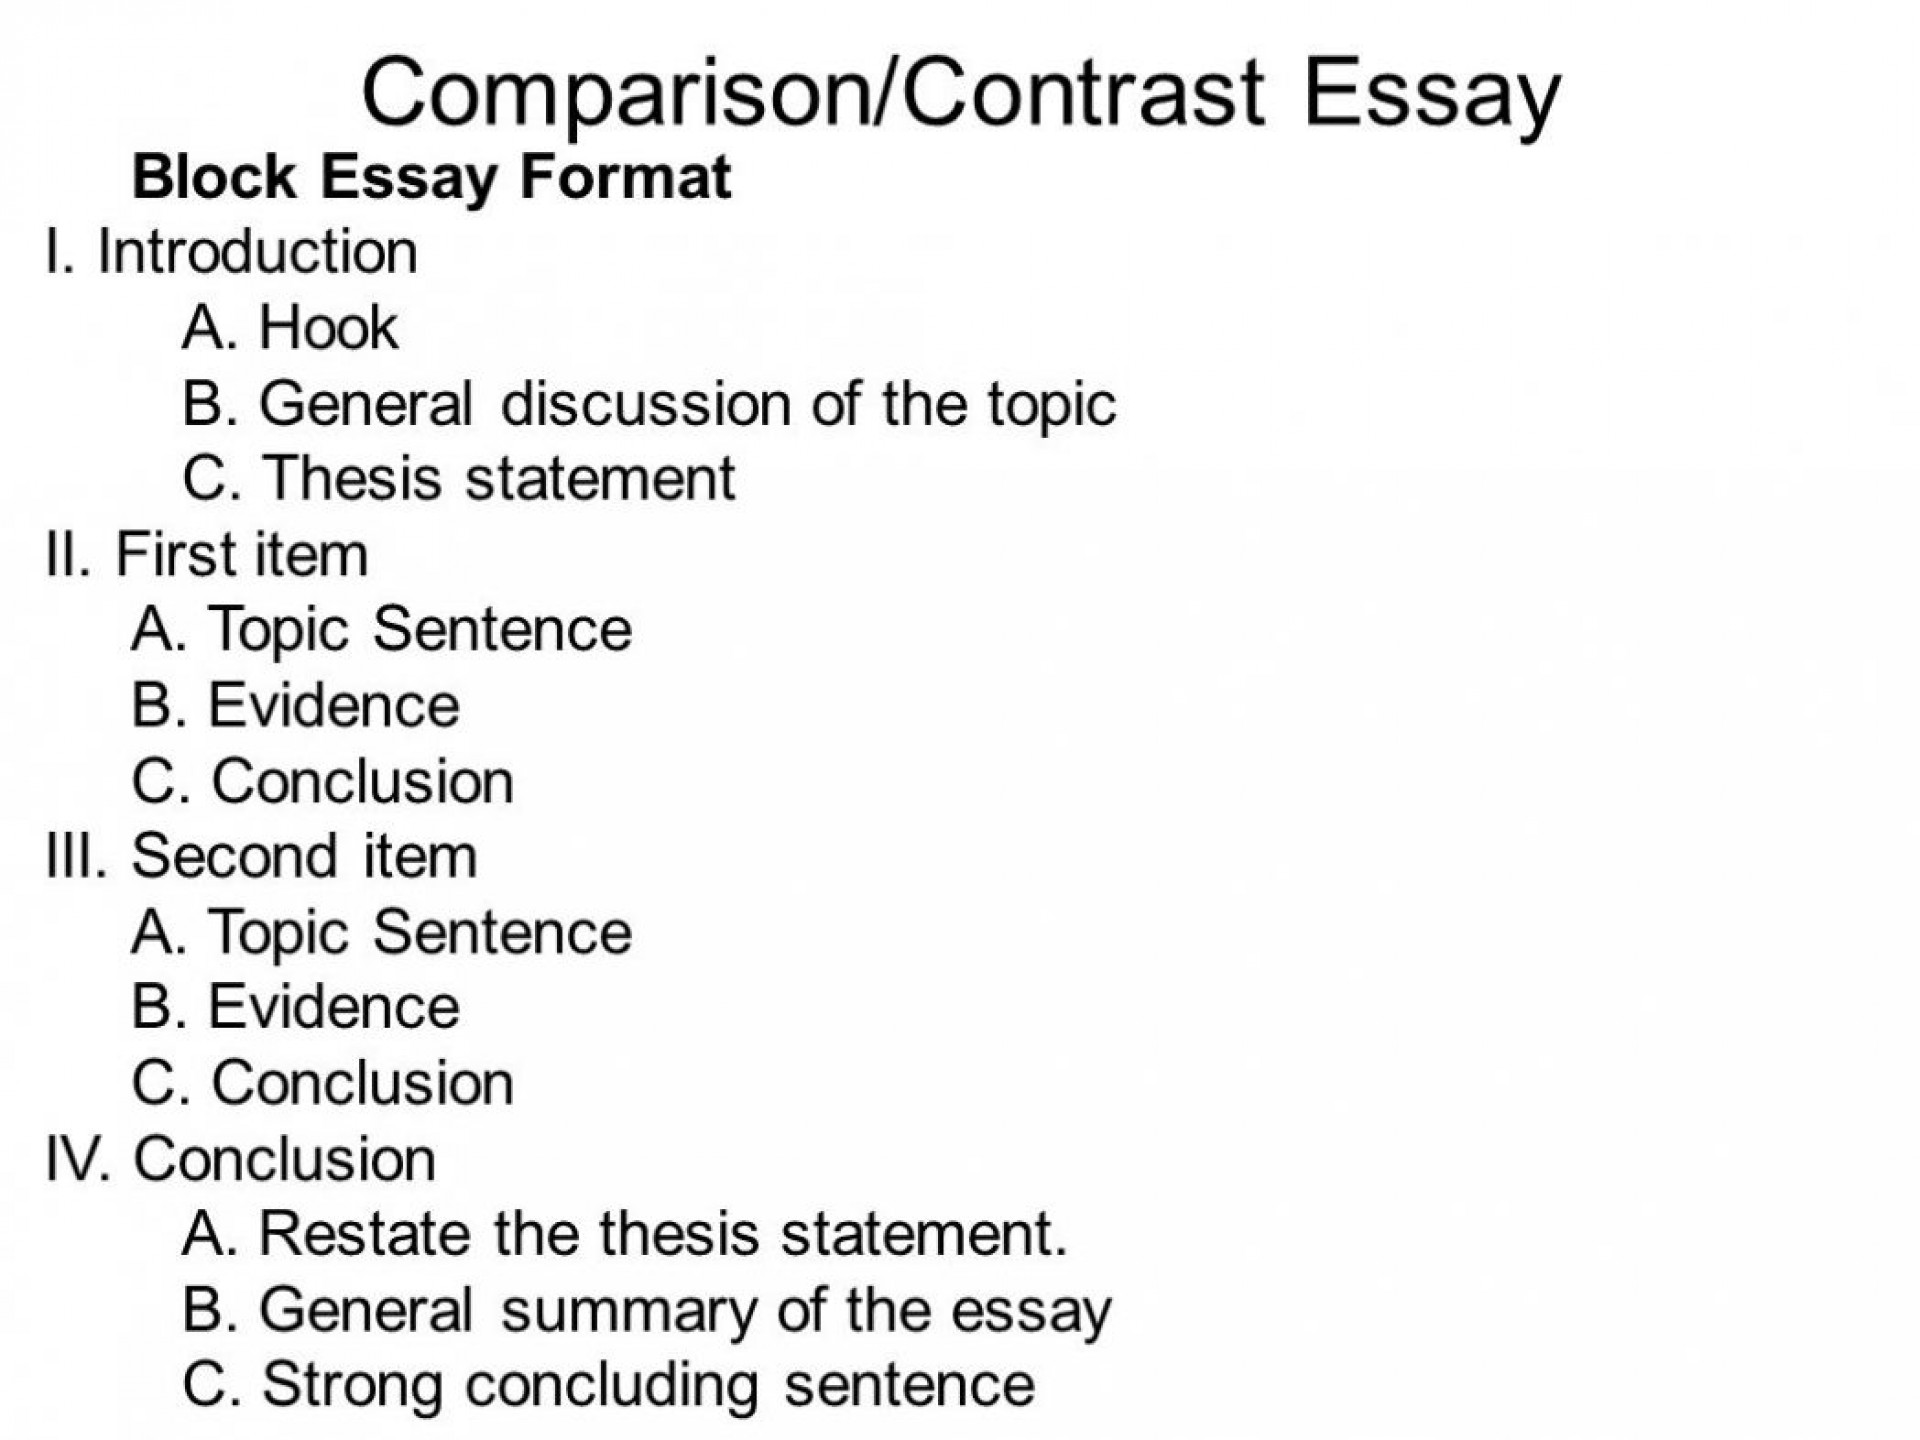 007 What Are Good Compare And Contrast Essay Topics Sli Topic Sentences Comparison Sample Question Definition 1048x786 For Amazing Essays Middle School Fun 1920